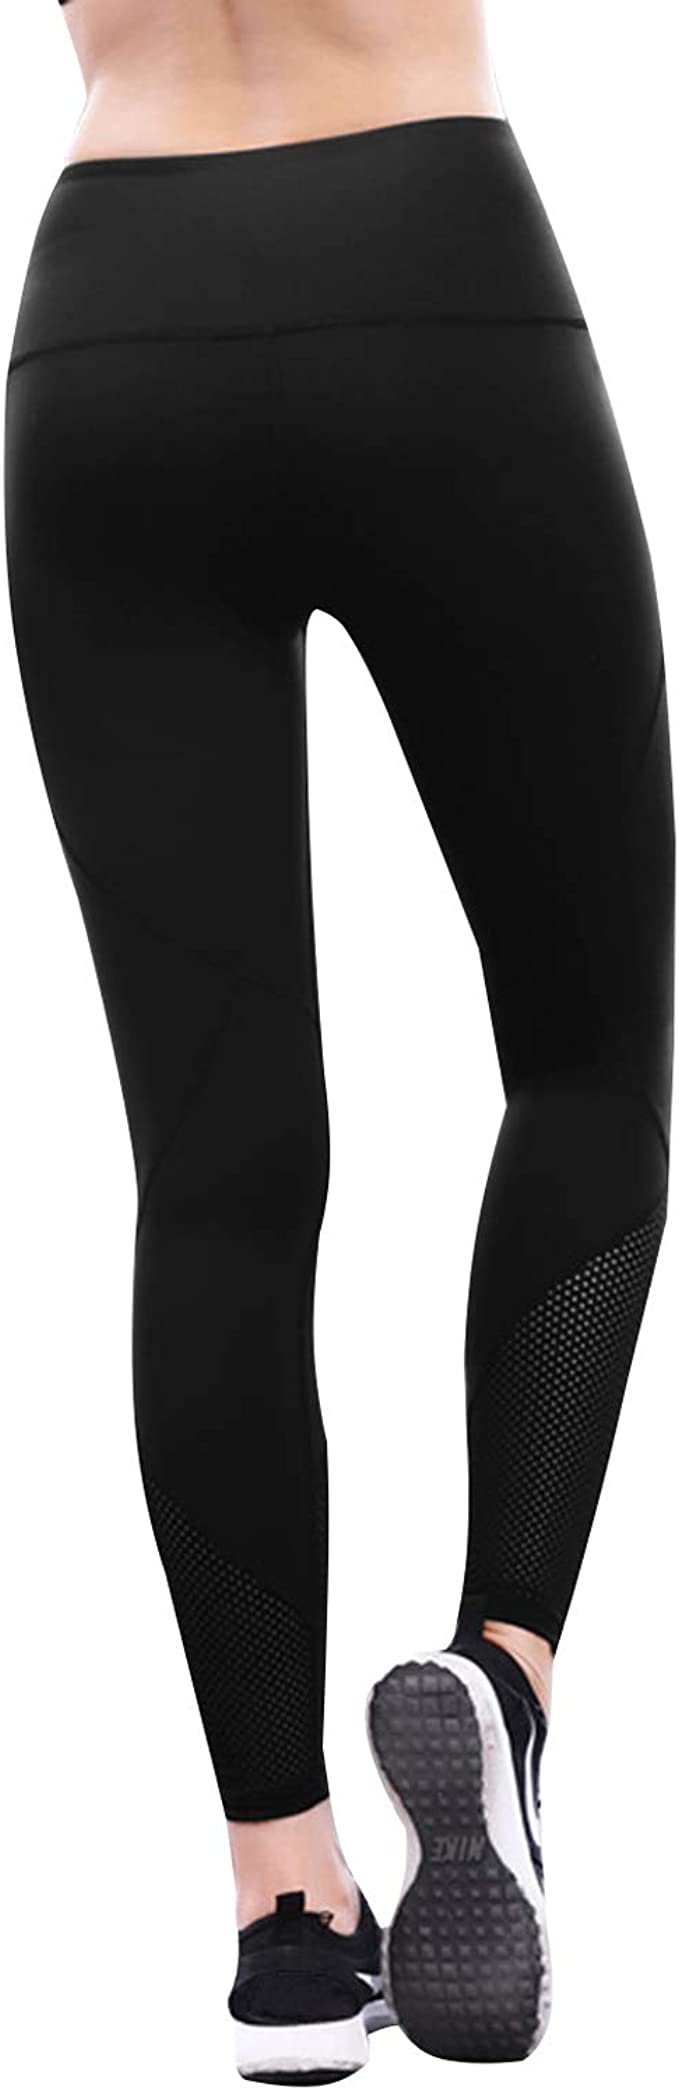 SUNNYME Womens Printed Yoga Pants High Waist Workout Leggings Tummy Control 4 Way Stretch Tights